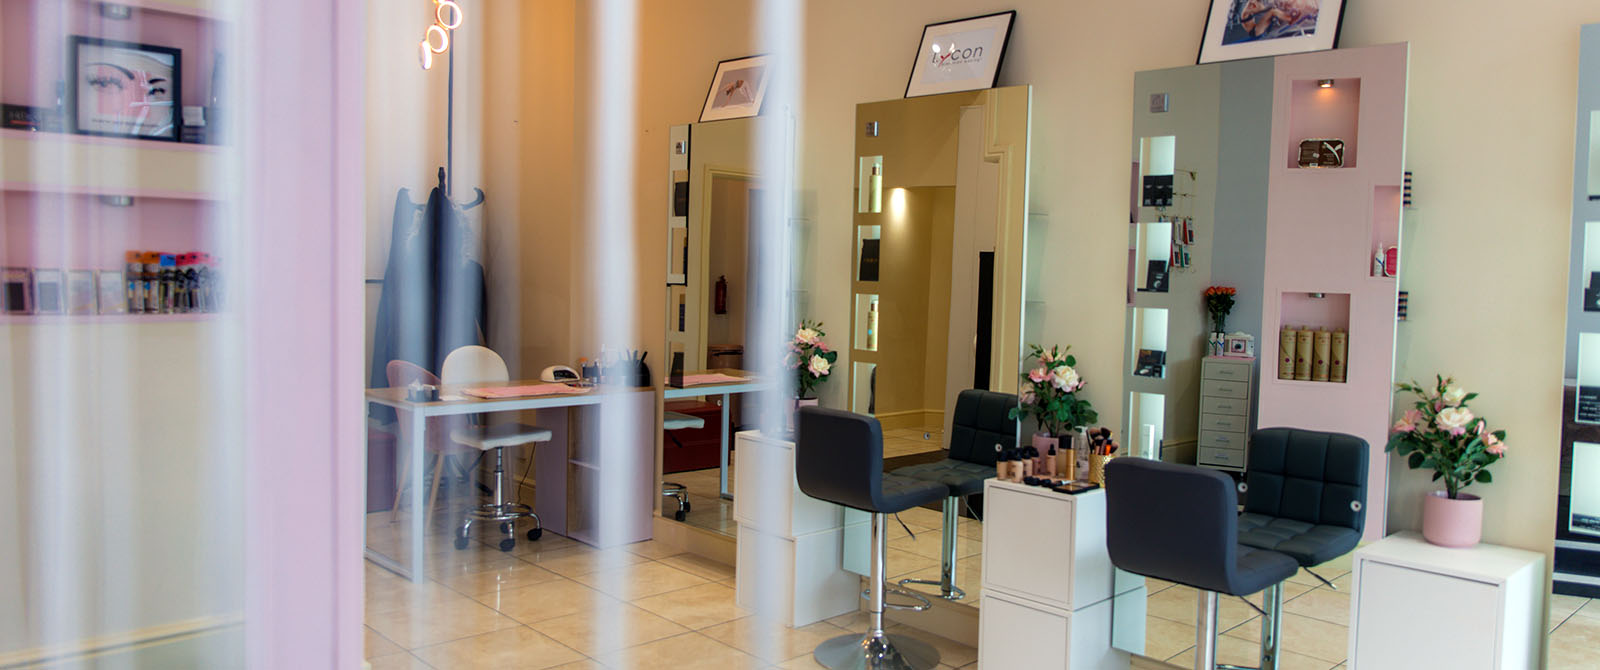 Exclusive beauty salon near Cardiff, in the heart of Penarth